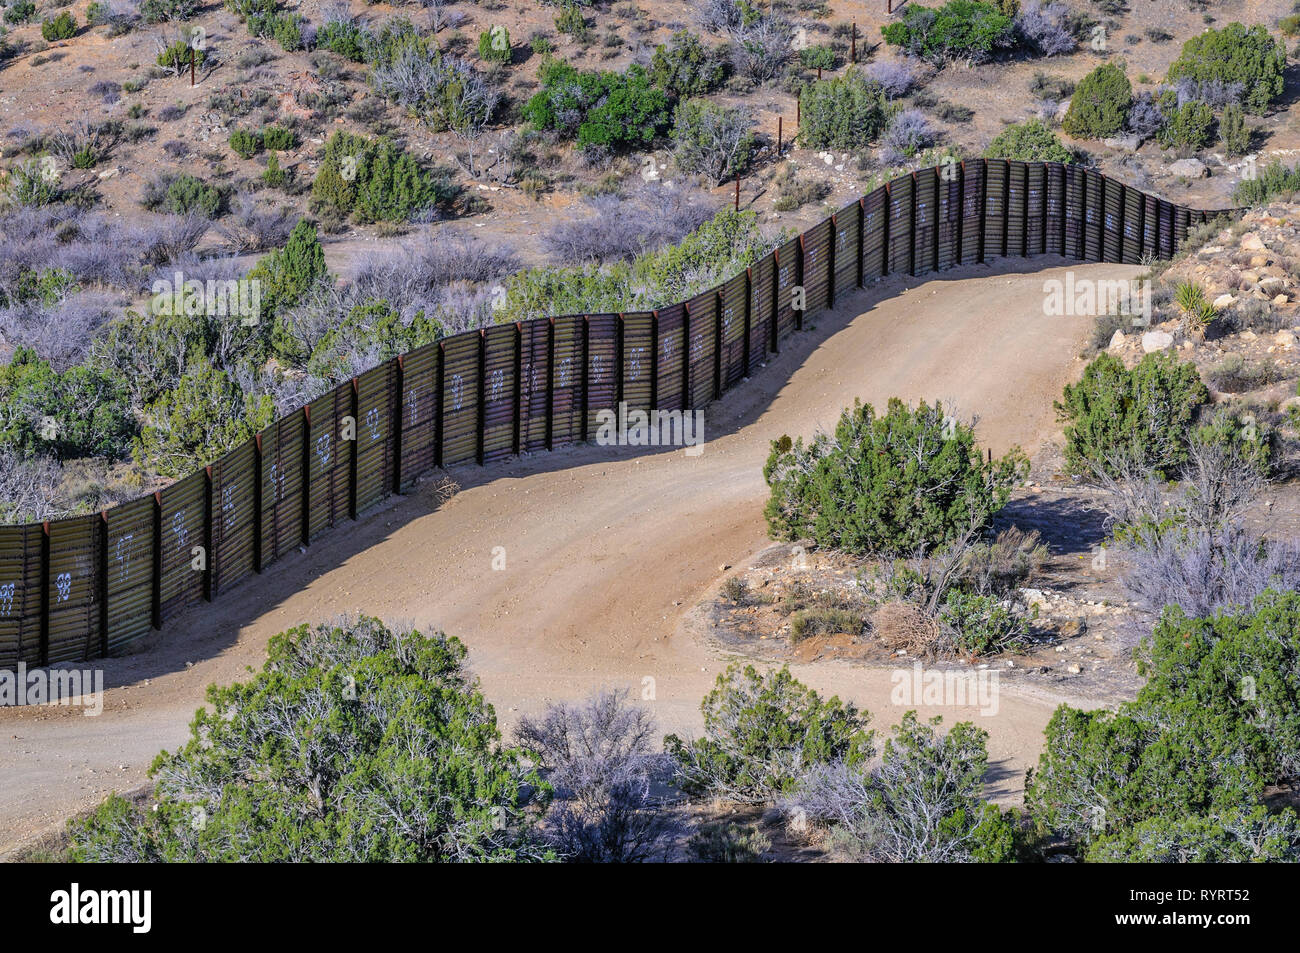 US Border fence, landing mat style construction, Jacumba California Stock Photo